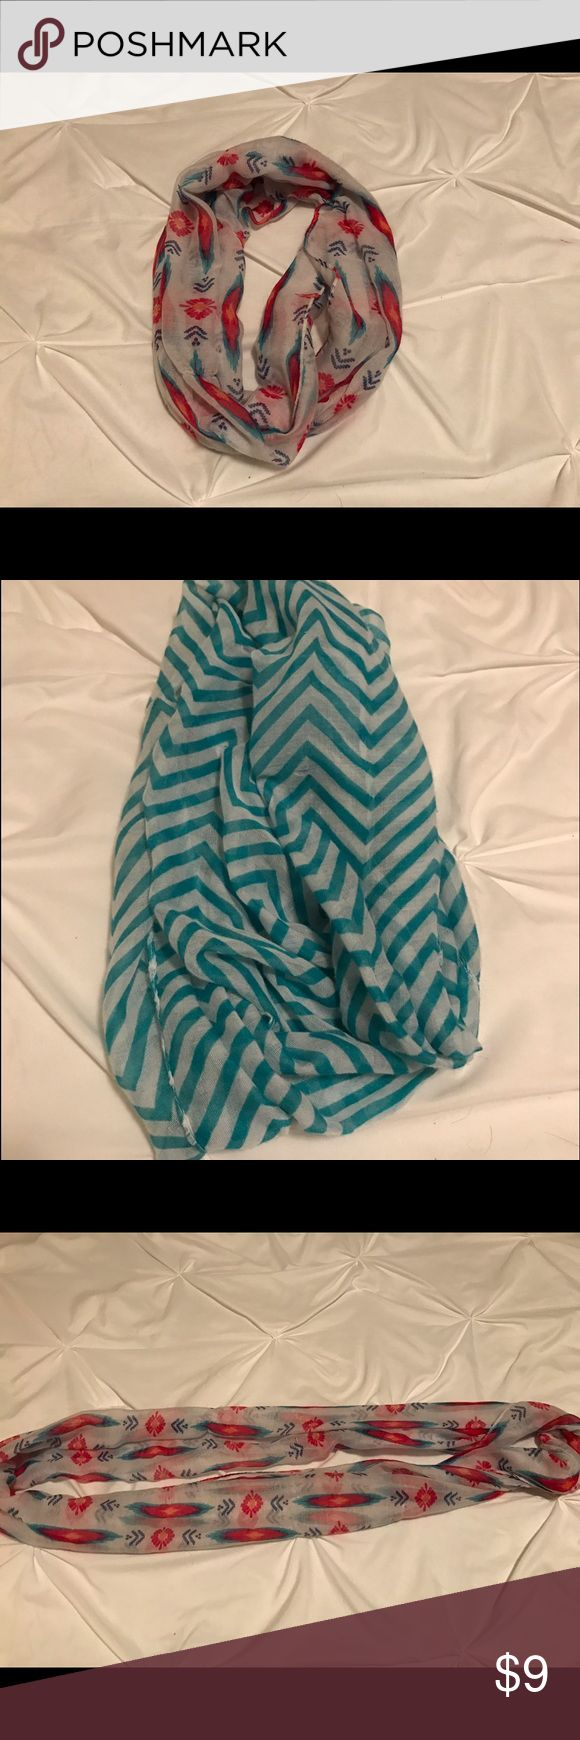 💕Two Infinity Scarves💕 DOUBLE DEAL‼️ Two infinity scarves that I will ship together. Perfect condition. Not used. Perfect colors for spring! Accessories Scarves & Wraps